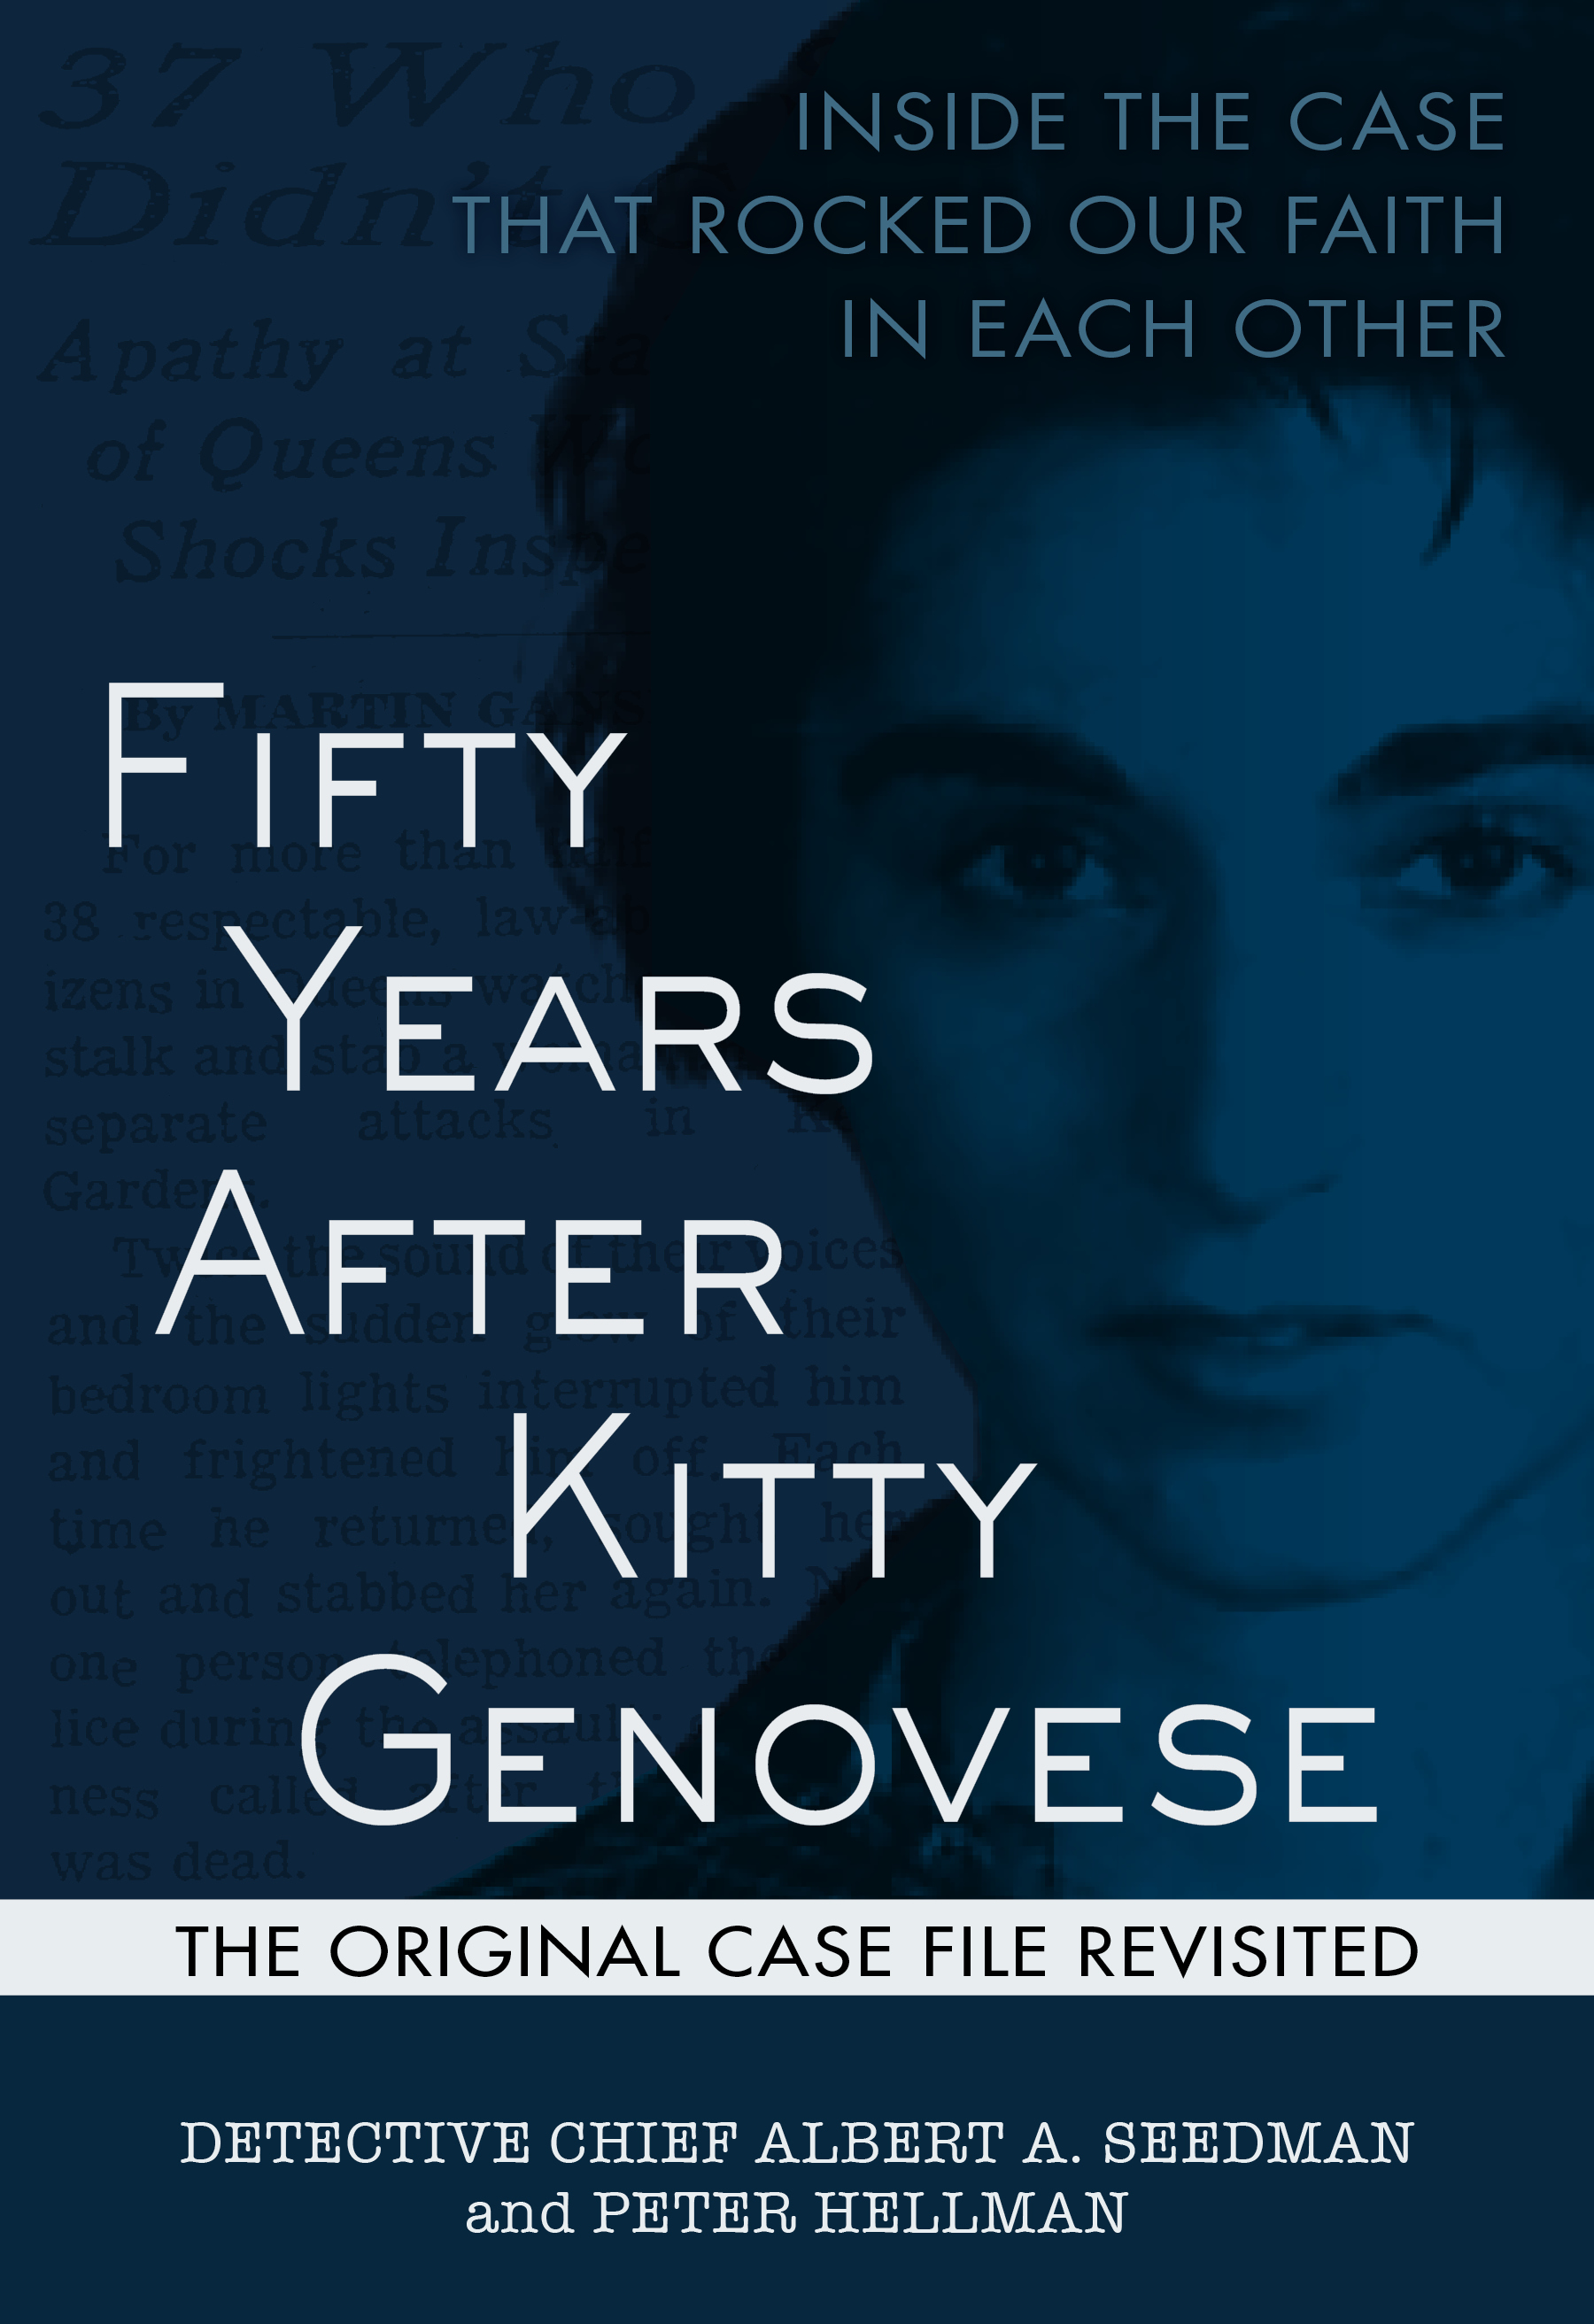 Marilyn Monroe Living Room Decor: Fifty Years After Kitty Genovese